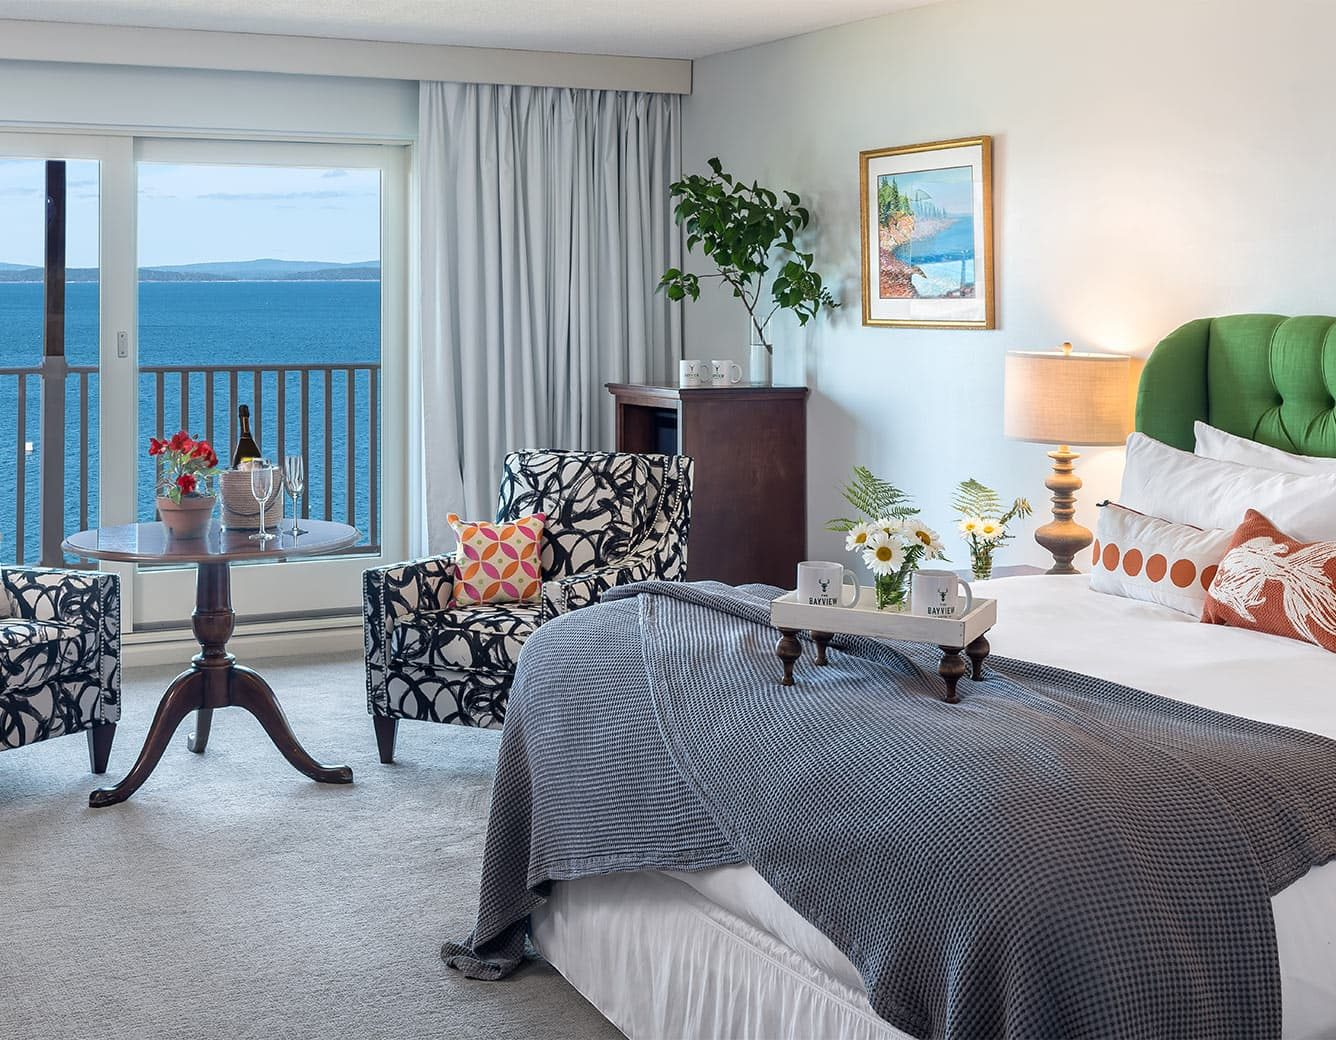 Ocean King Bed and two sitting chairs